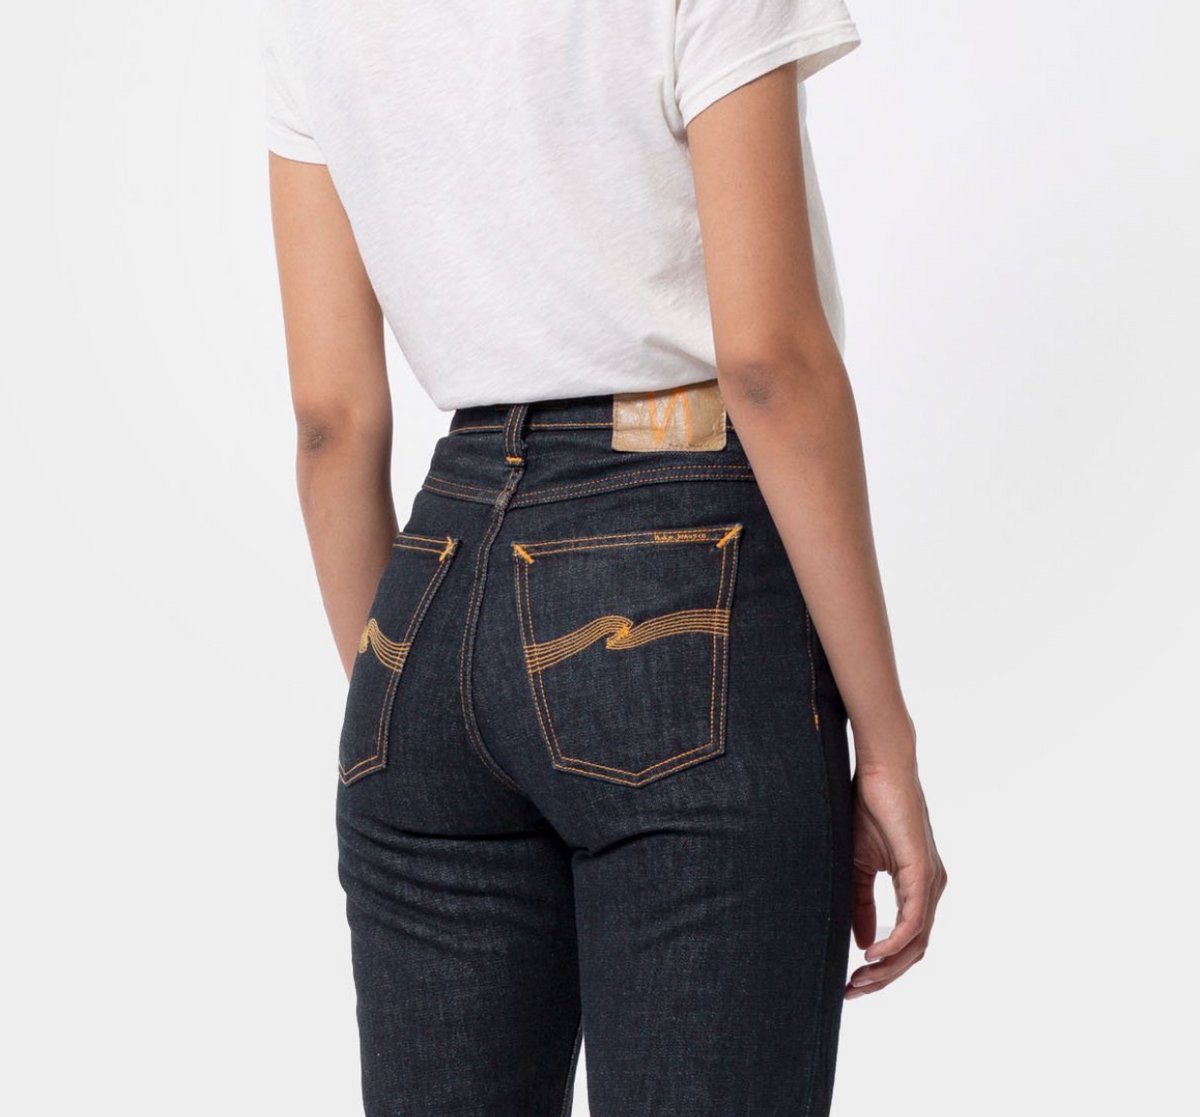 Breezy Britt | 12oz | Rinsed Ridged Denim